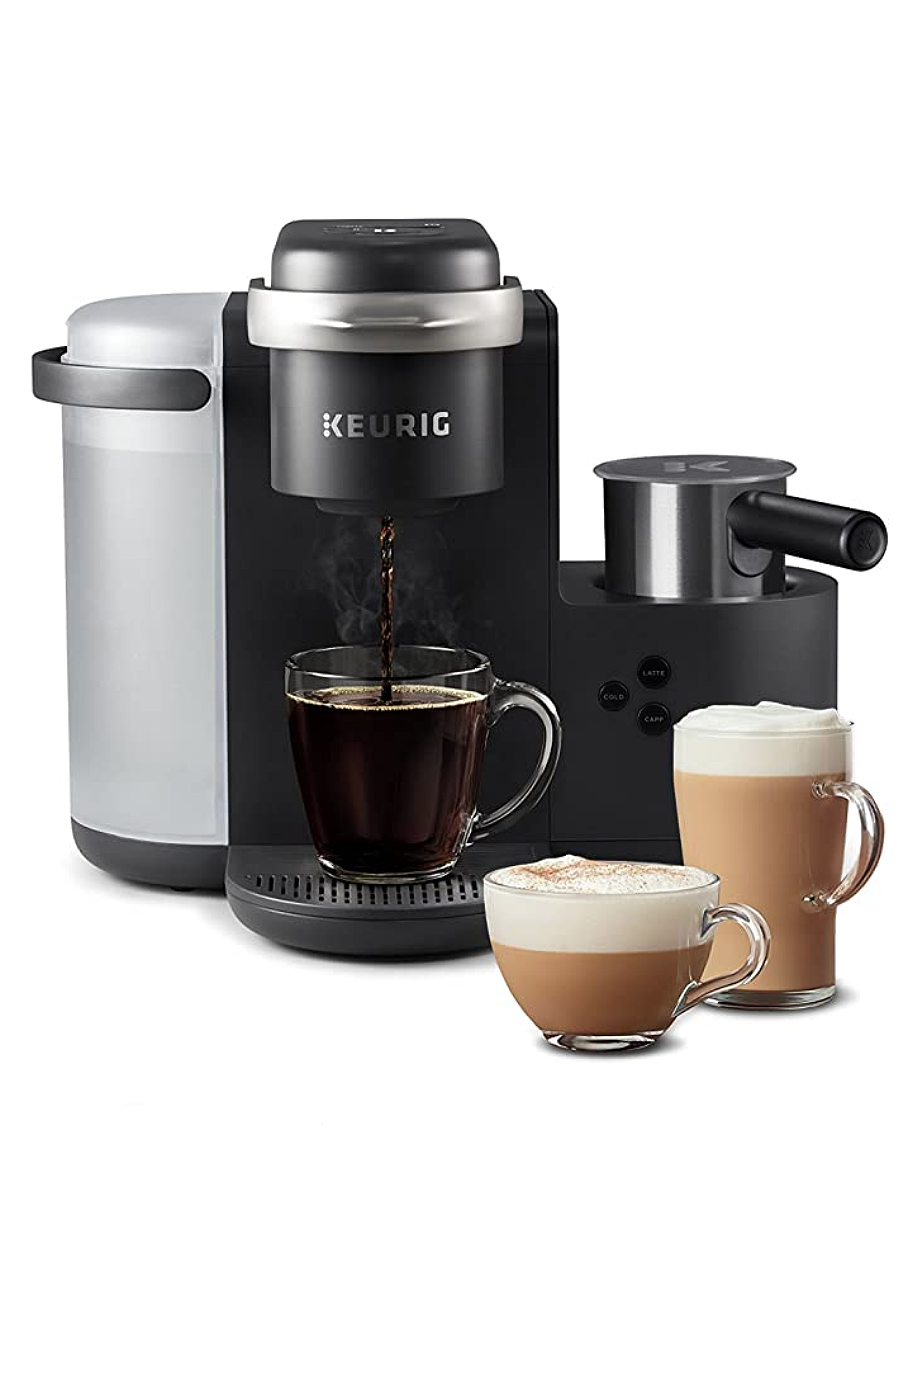 """<p><strong>Keurig</strong></p><p>amazon.com</p><p><strong>$169.99</strong></p><p><a href=""""https://www.amazon.com/dp/B07C1XC3GF?tag=syn-yahoo-20&ascsubtag=%5Bartid%7C10058.g.34480122%5Bsrc%7Cyahoo-us"""" rel=""""nofollow noopener"""" target=""""_blank"""" data-ylk=""""slk:SHOP IT"""" class=""""link rapid-noclick-resp"""">SHOP IT</a></p><p>Forget the local coffee shop. All she needs is this machine on her kitchen countertop to make her favorite lattes, cappuccinos, and beyond right at home.</p>"""